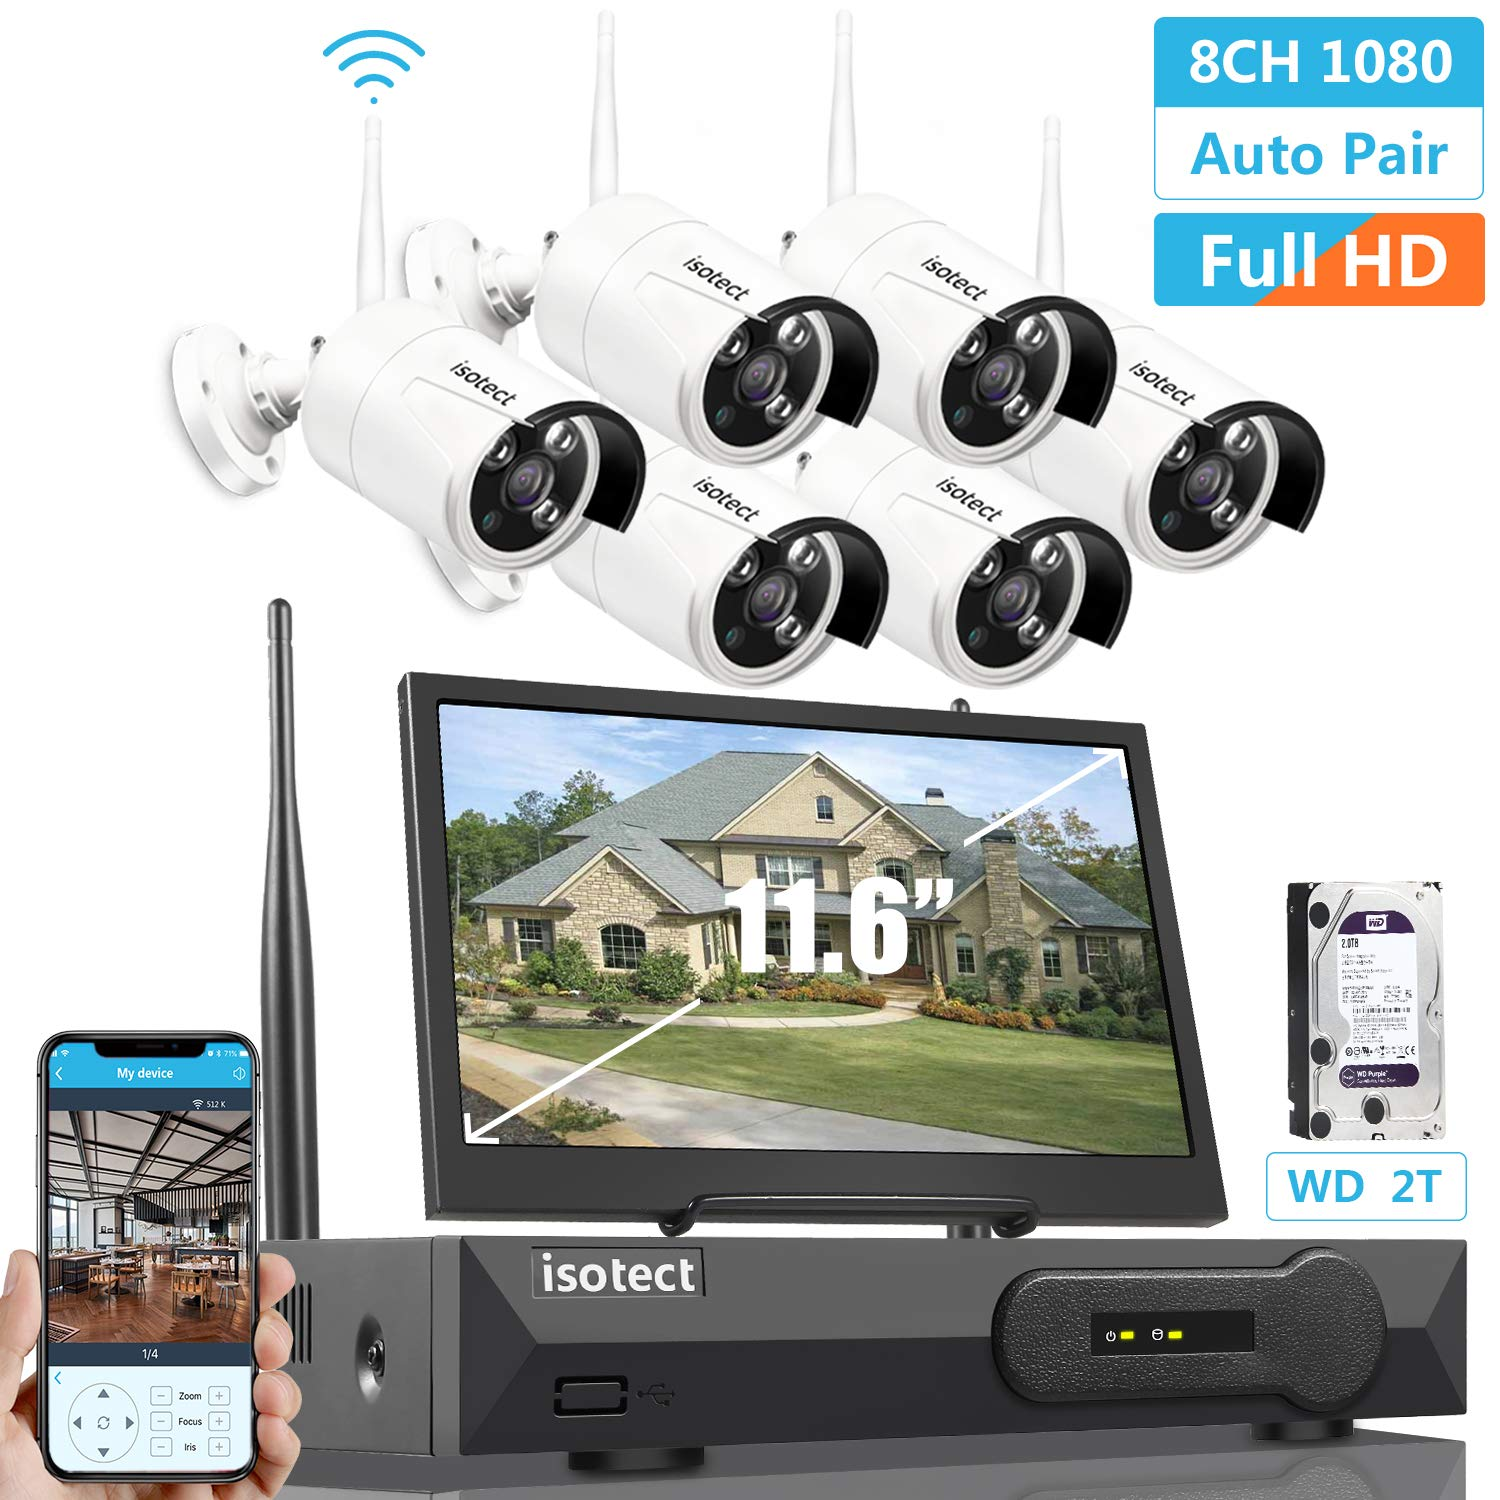 2019 Newest All in One with 11.6-inch Monitor Home Video Surveillance System, Wireless Security Camera System,Isotect 8CH Full HD 1080P Security Camera System 6pcs 1080P IP Cameras, 2TB HDD